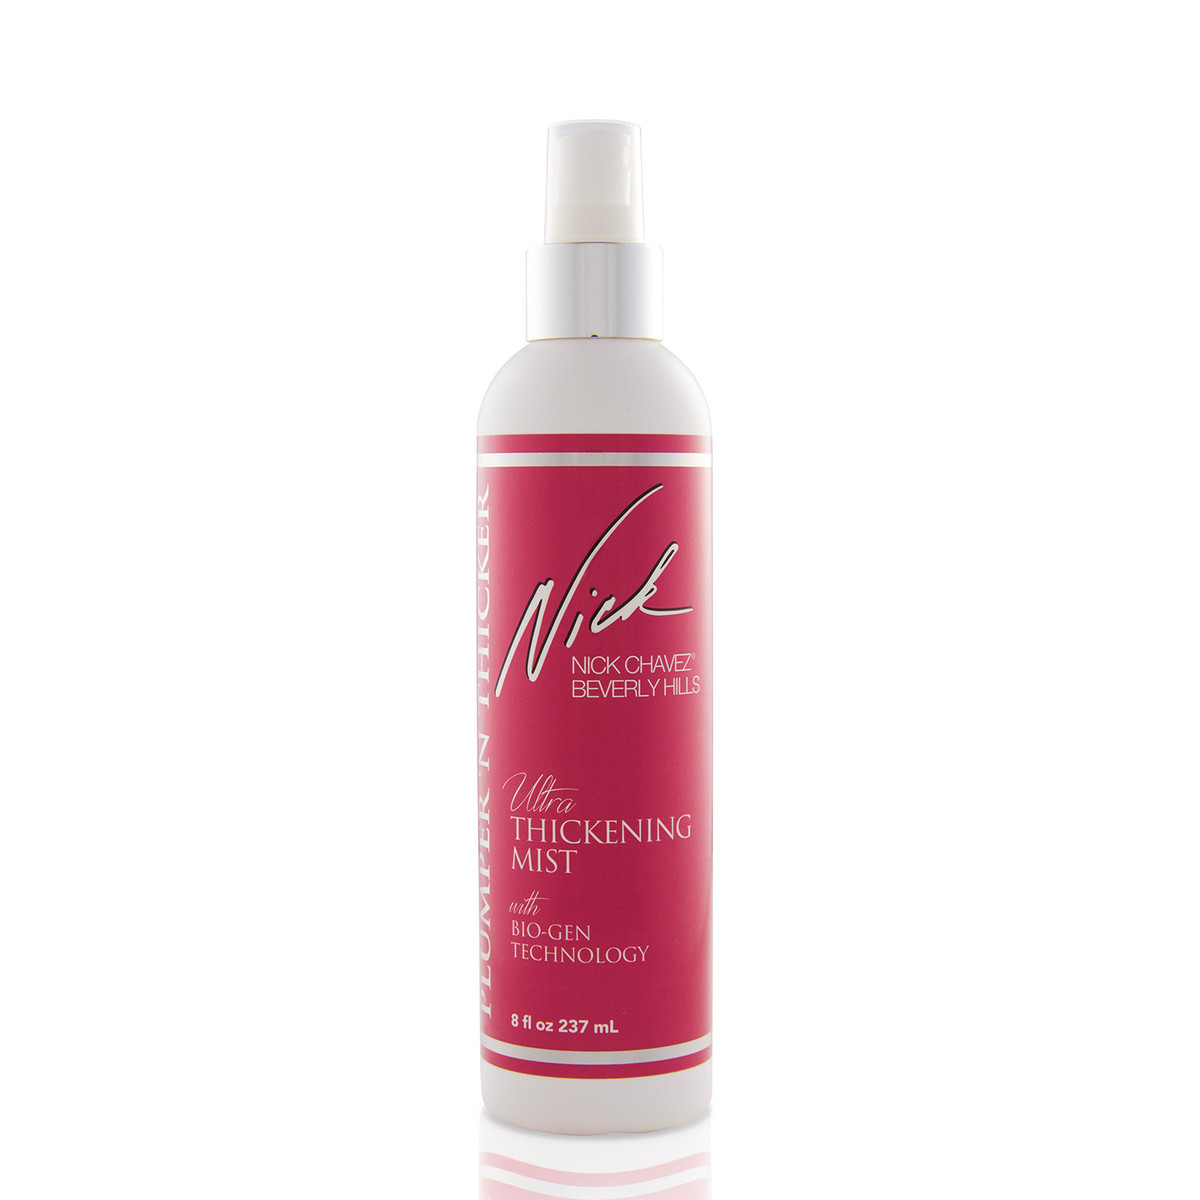 8oz Plumper 'N Thicker Ultra Thickening Mist with Bio-Gen Technology